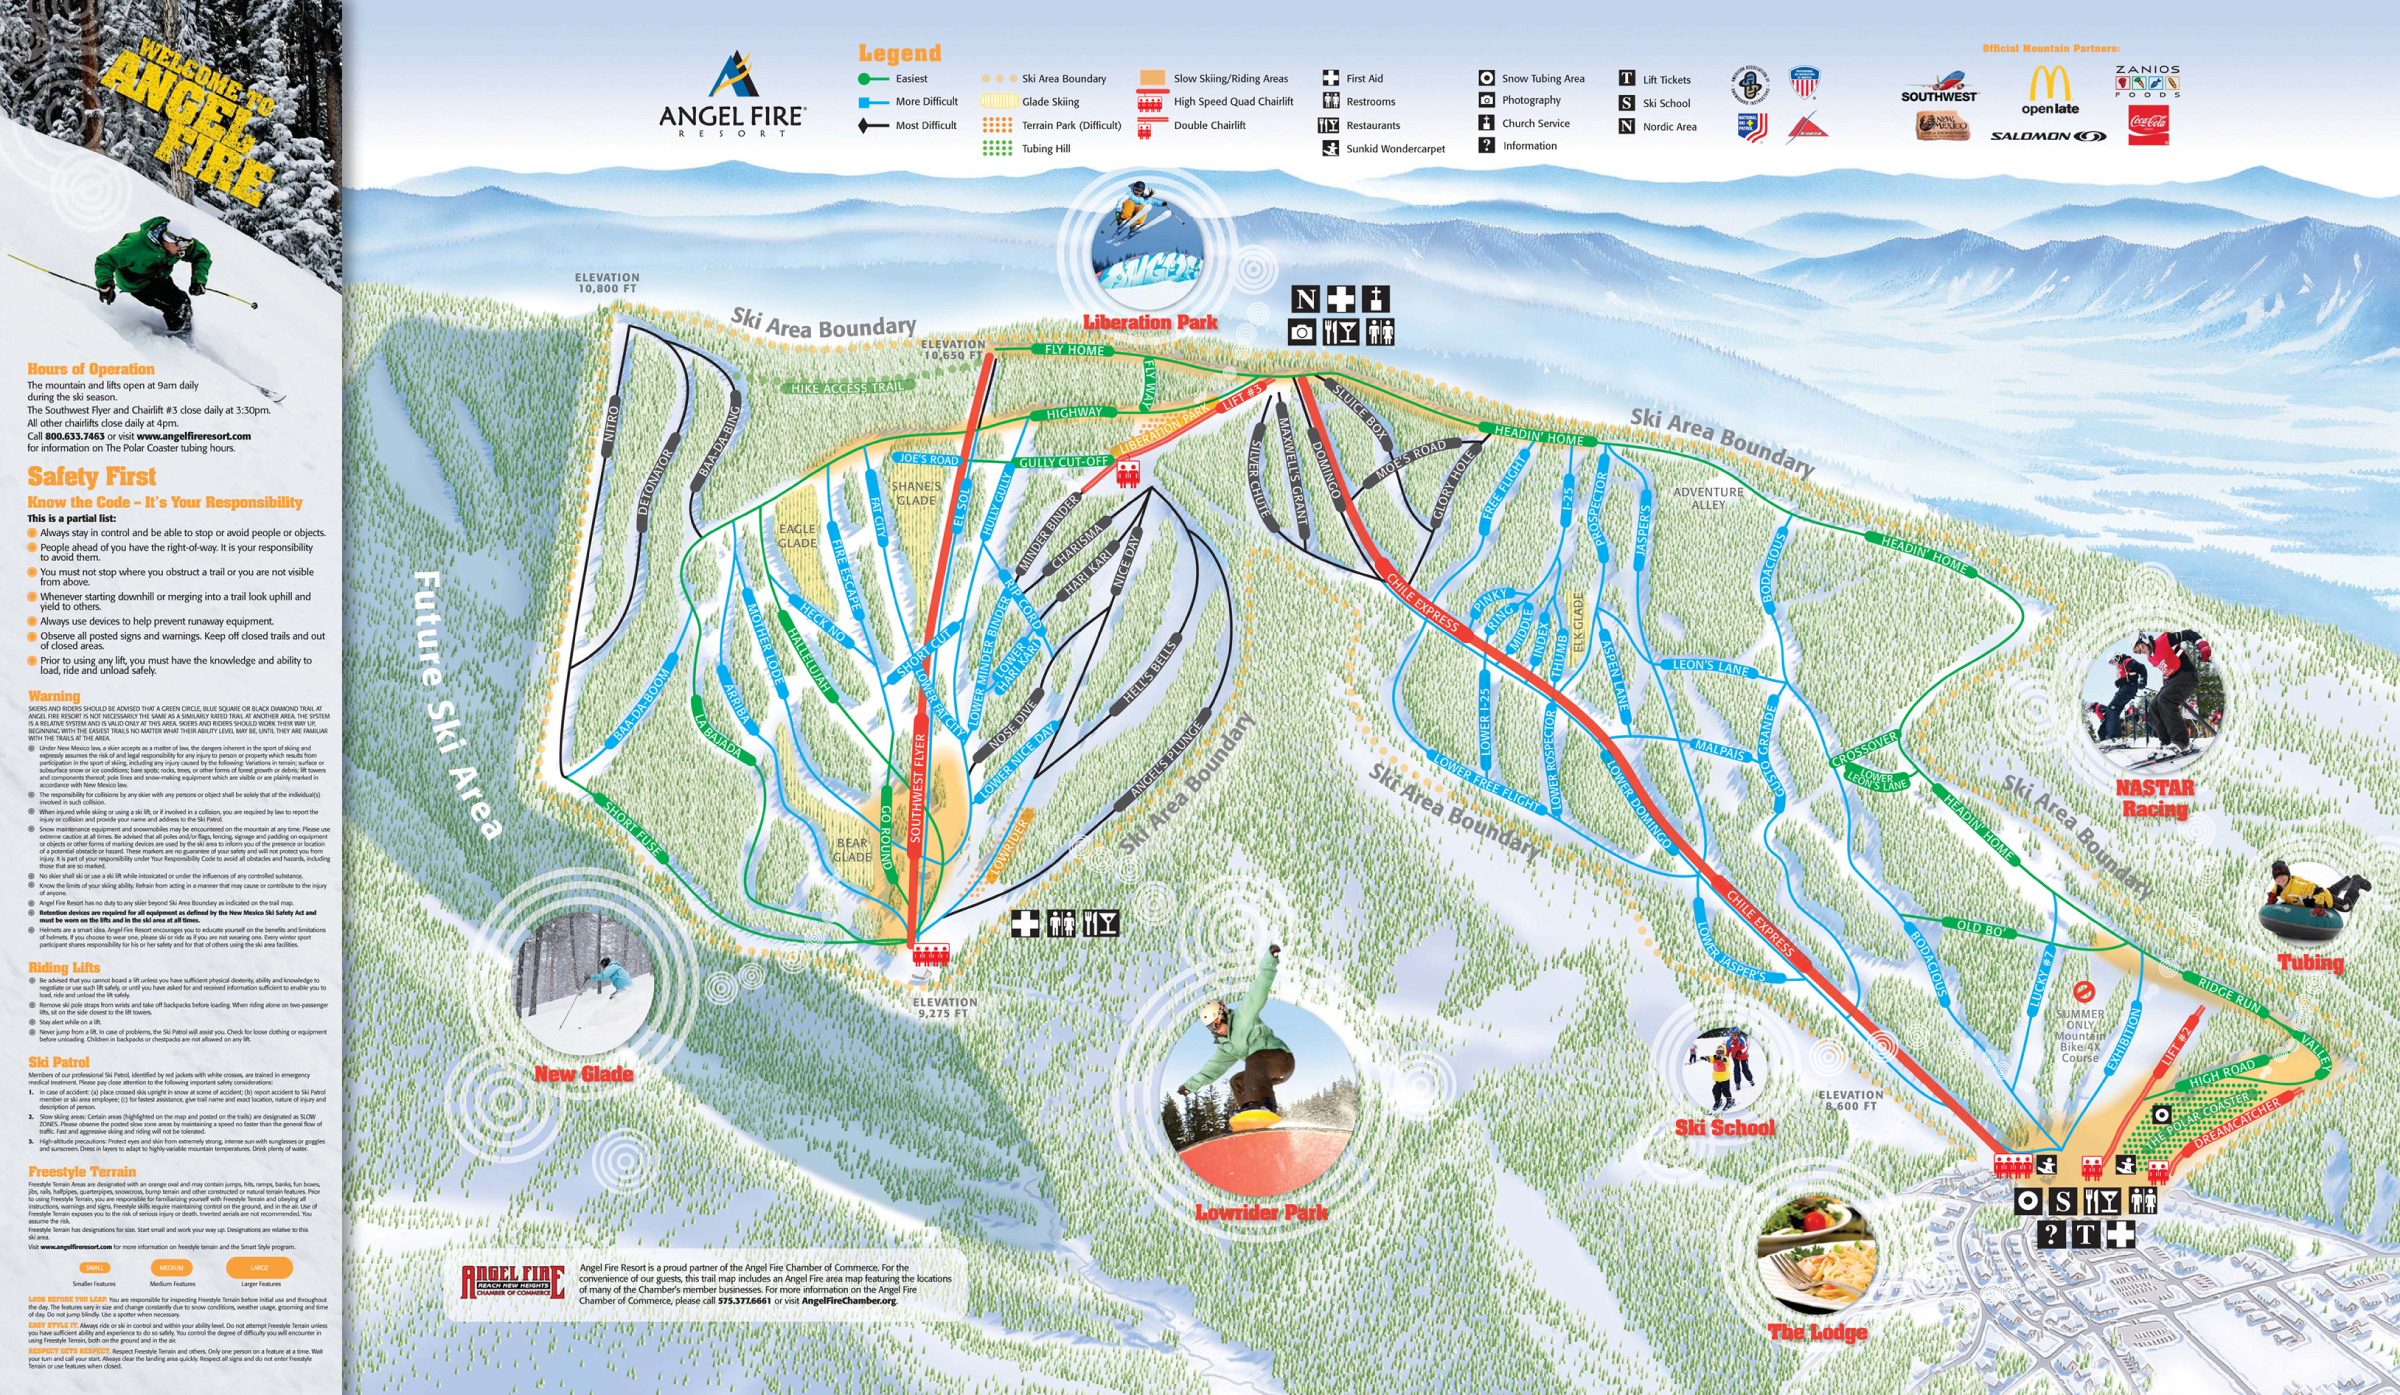 Angel Fire Resort   SkiMap.org